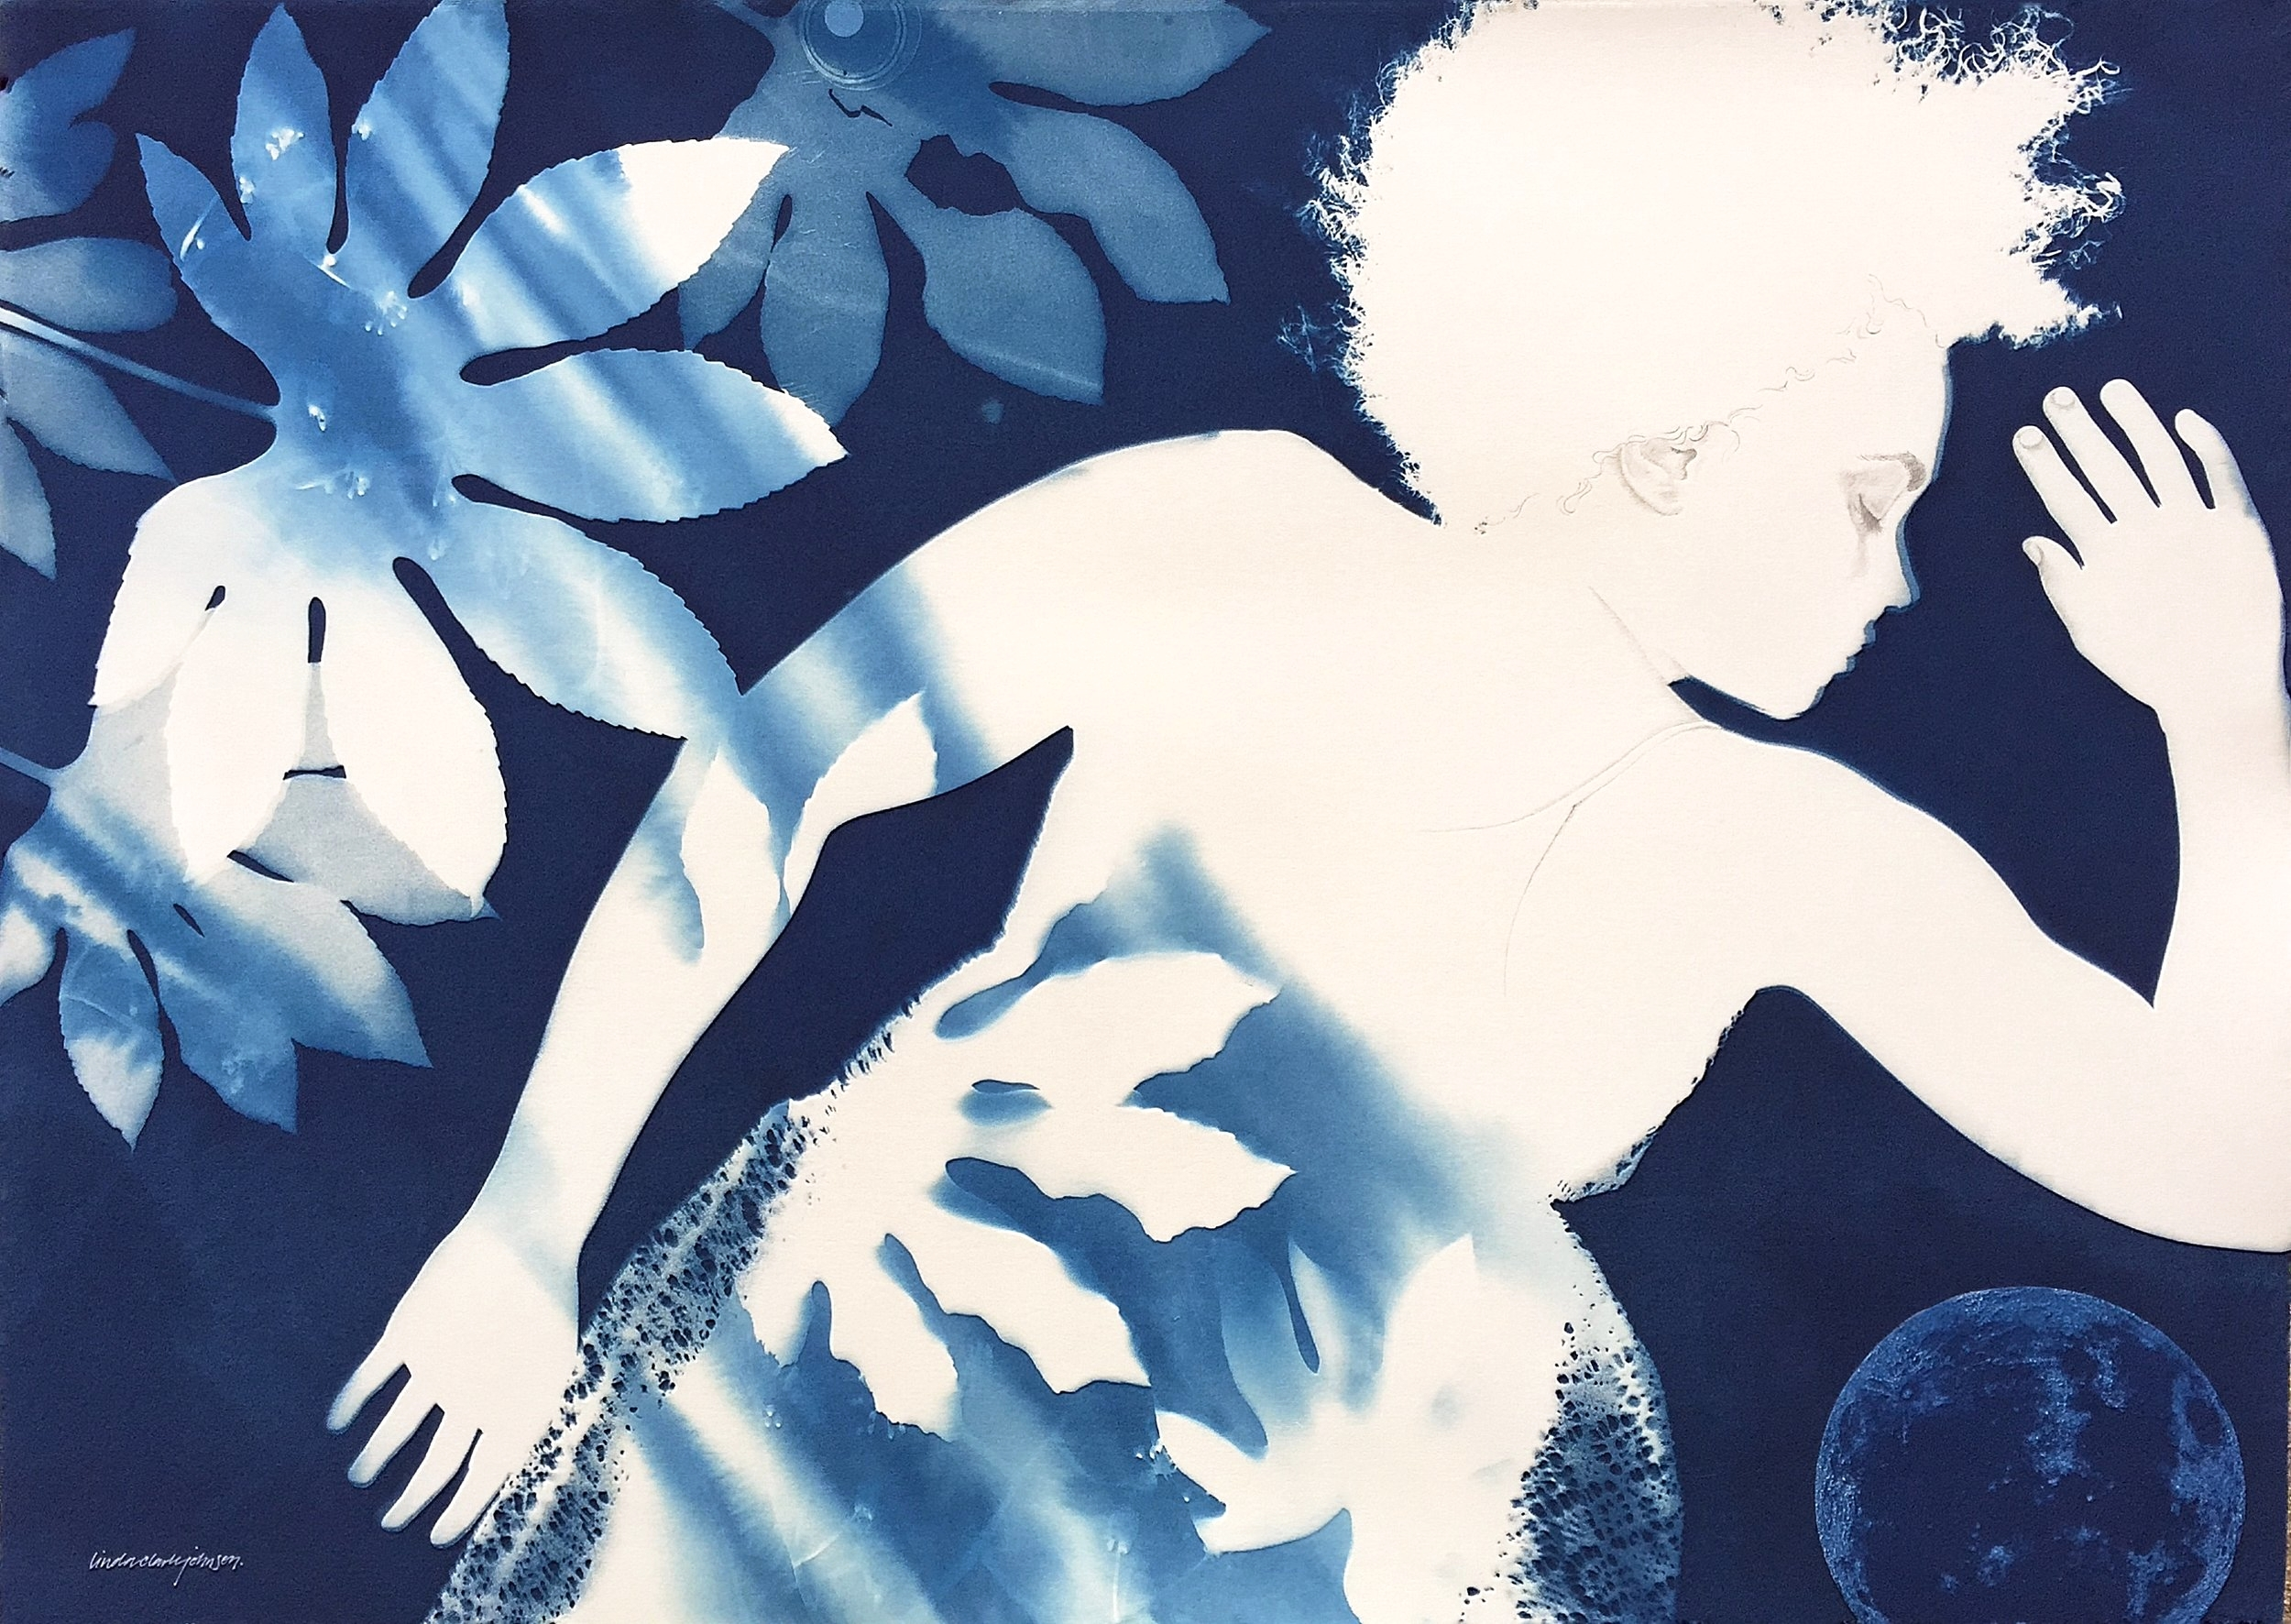 Between Dreaming and Dawn  | 41 x 29.5 | cyanotype double exposure, collage and graphite